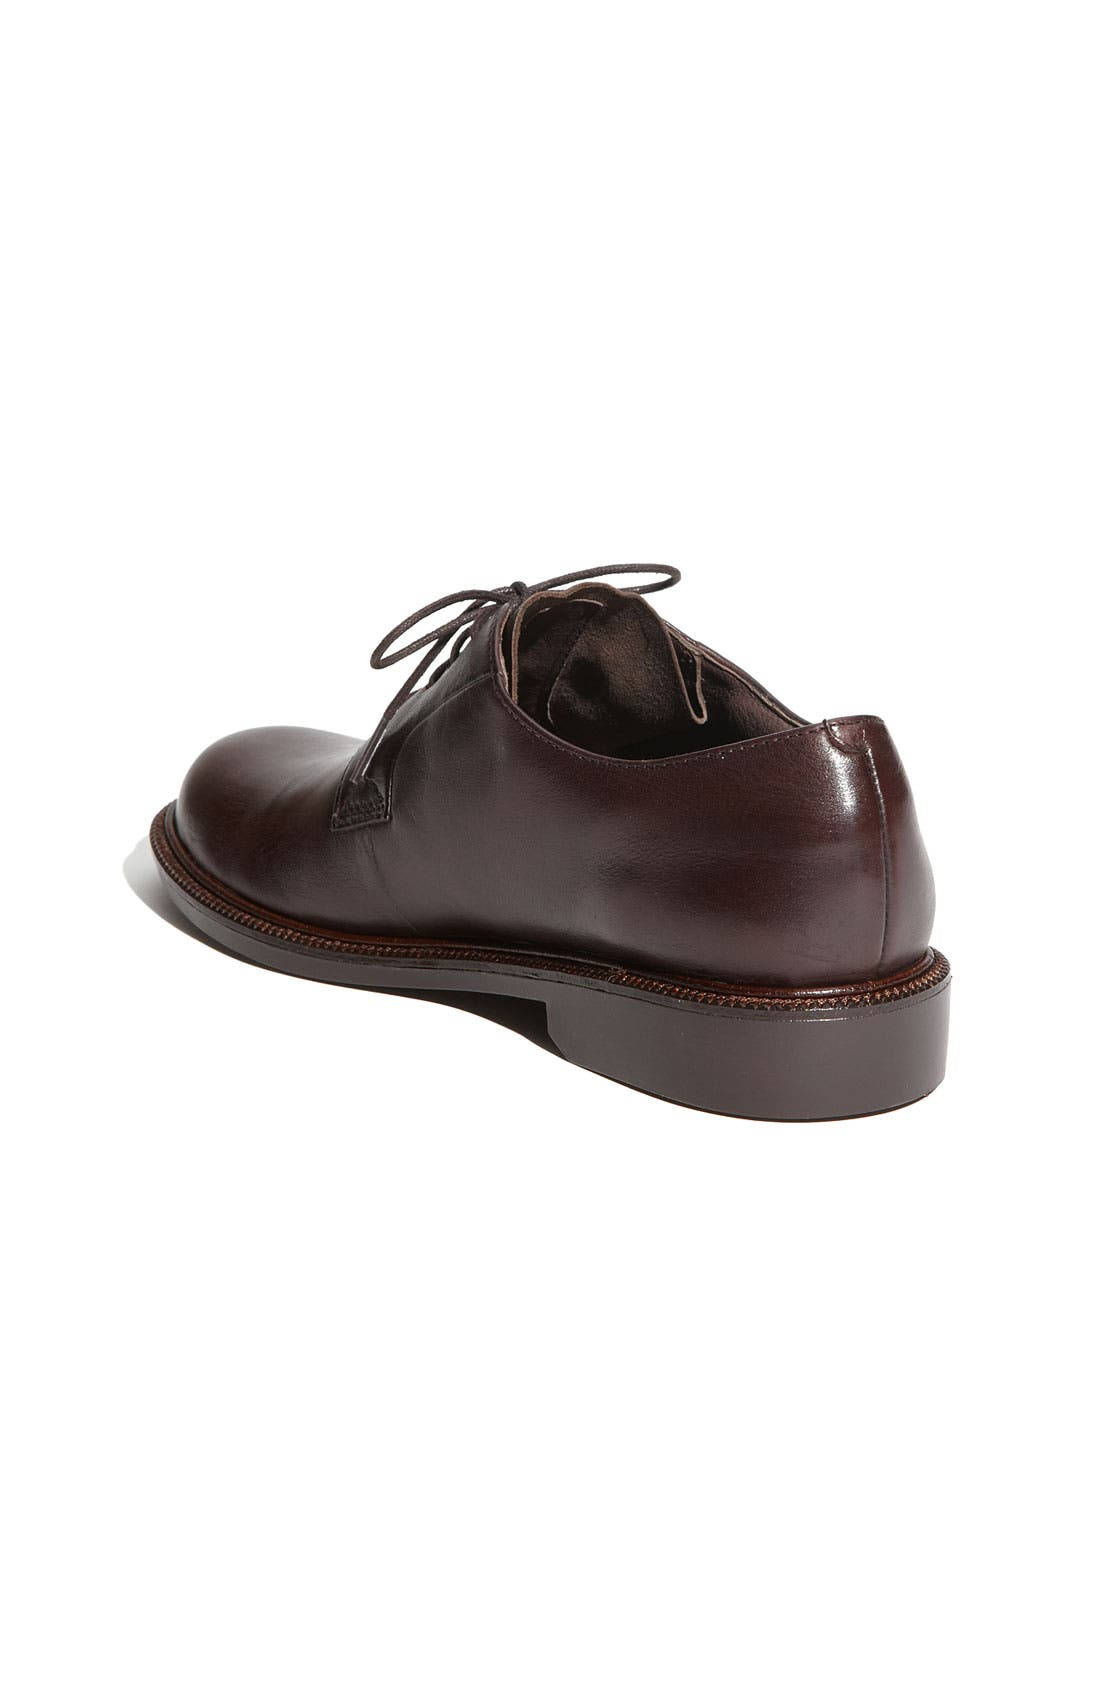 Alternate Image 2  - Nordstrom 'Braden' Oxford (Toddler, Little Kid & Big Kid)